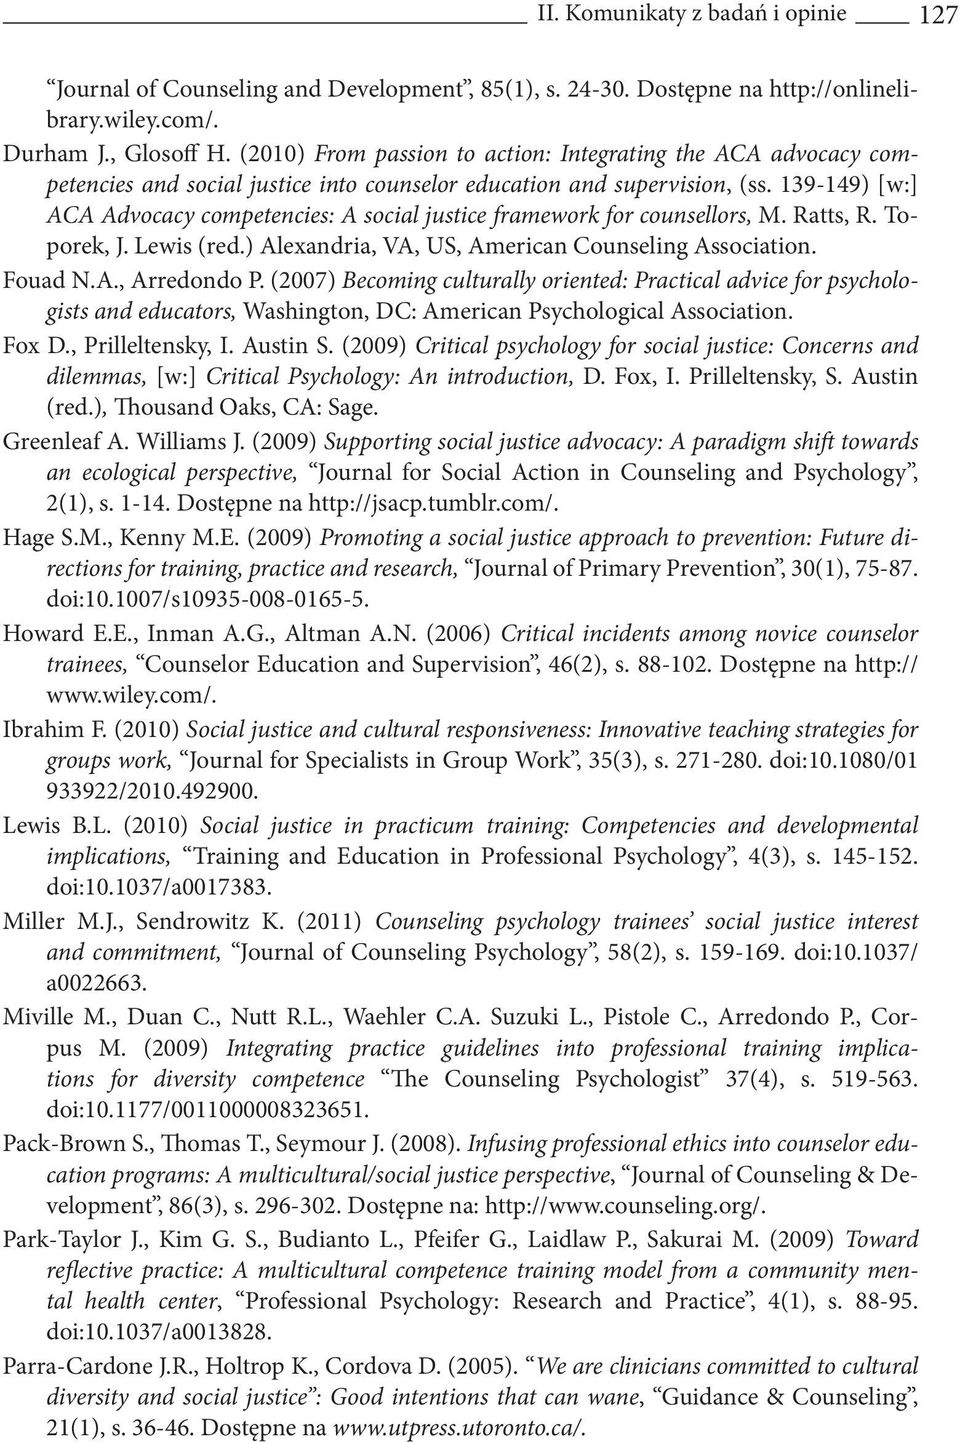 139-149) [w:] ACA Advocacy competencies: A social justice framework for counsellors, M. Ratts, R. Toporek, J. Lewis (red.) Alexandria, VA, US, American Counseling Association. Fouad N.A., Arredondo P.